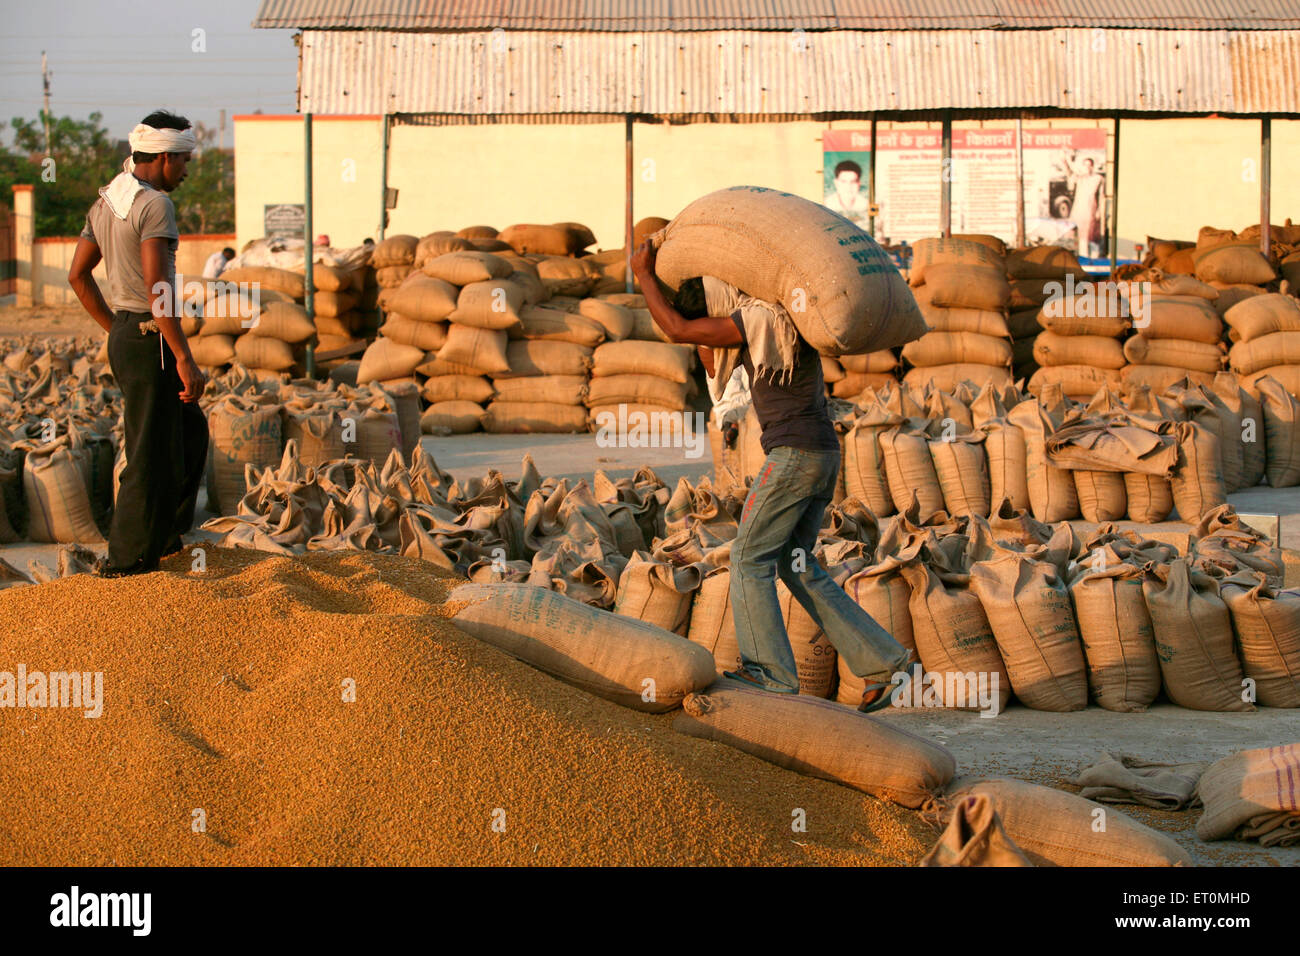 Worker carrying jute bag containing wheat to be emptied while other worker directing him at Harsud Mandi Bhopal Stock Photo